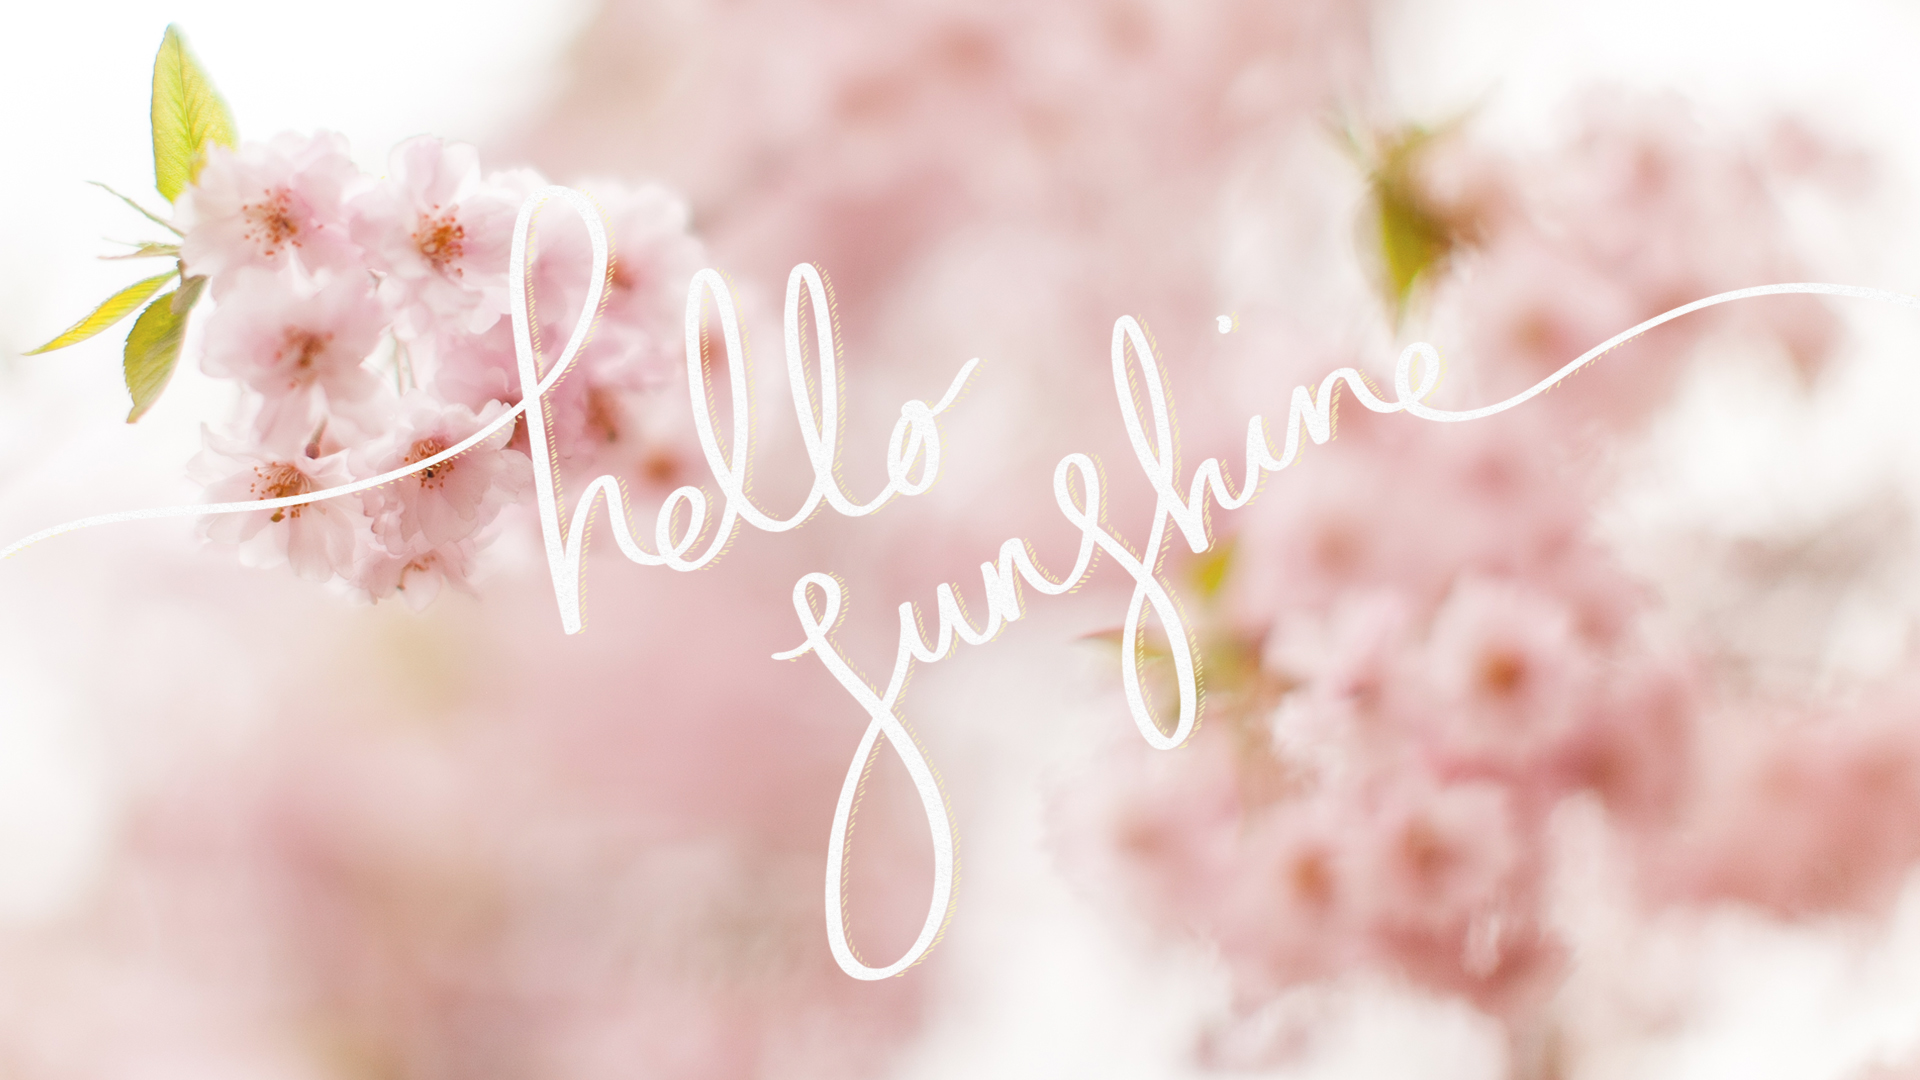 Christian Wallpaper Fall Offering Hello Sunshine A Free Cherry Blossom Desktop Wallpaper